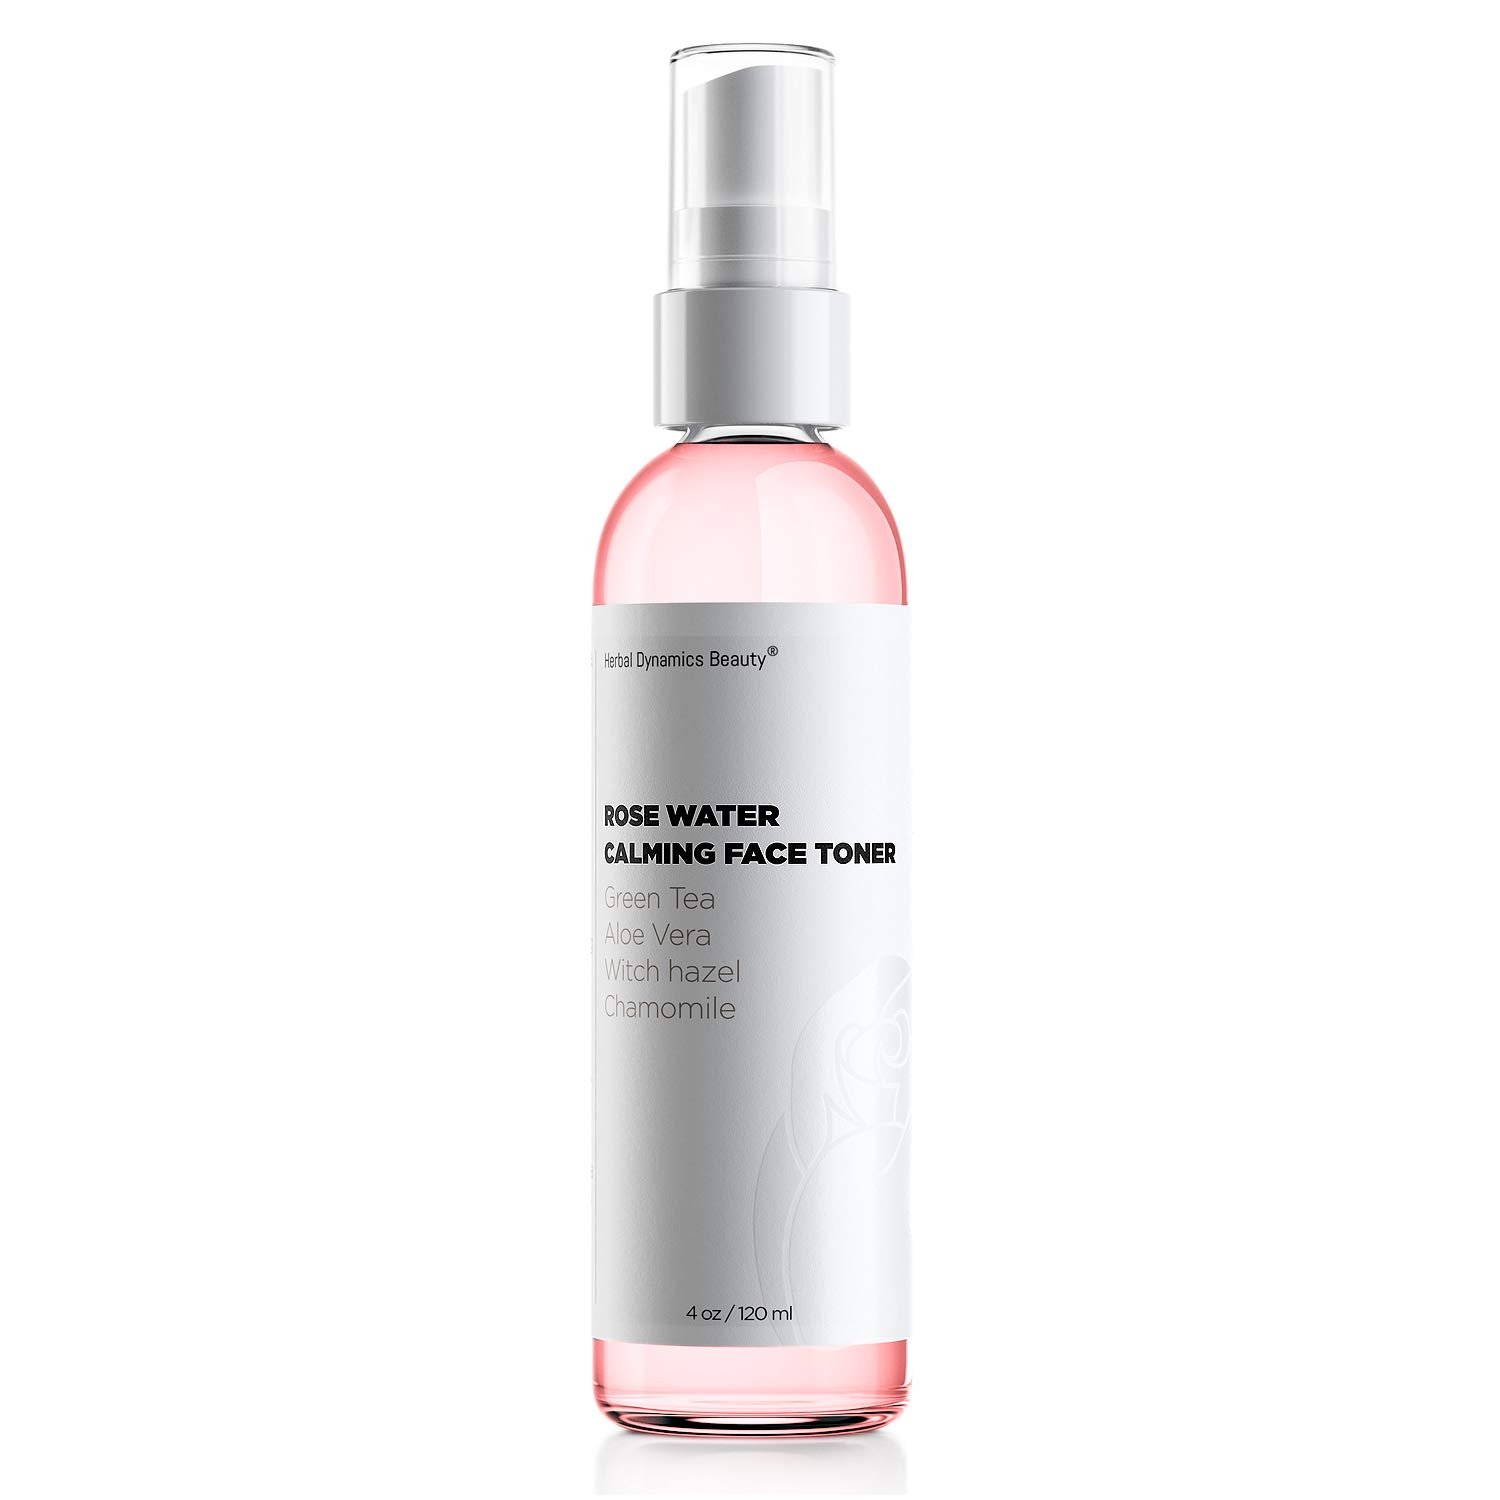 HD Beauty Rose Water Hydrating Face Toner Mist with Calming Aloe, Hyaluronic Acid and Organic Anti-Aging Ingredients, 4 oz.